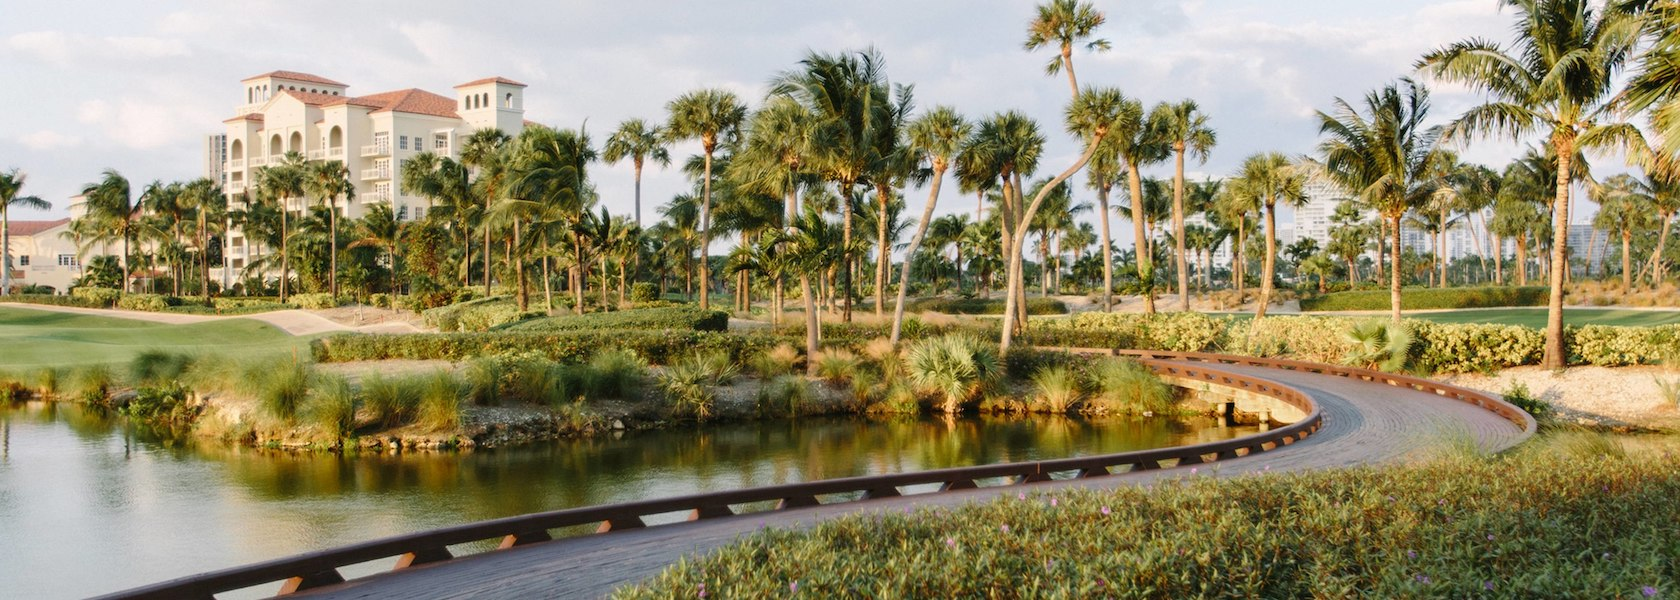 Golf path at JW Marriott Turnberry Isle